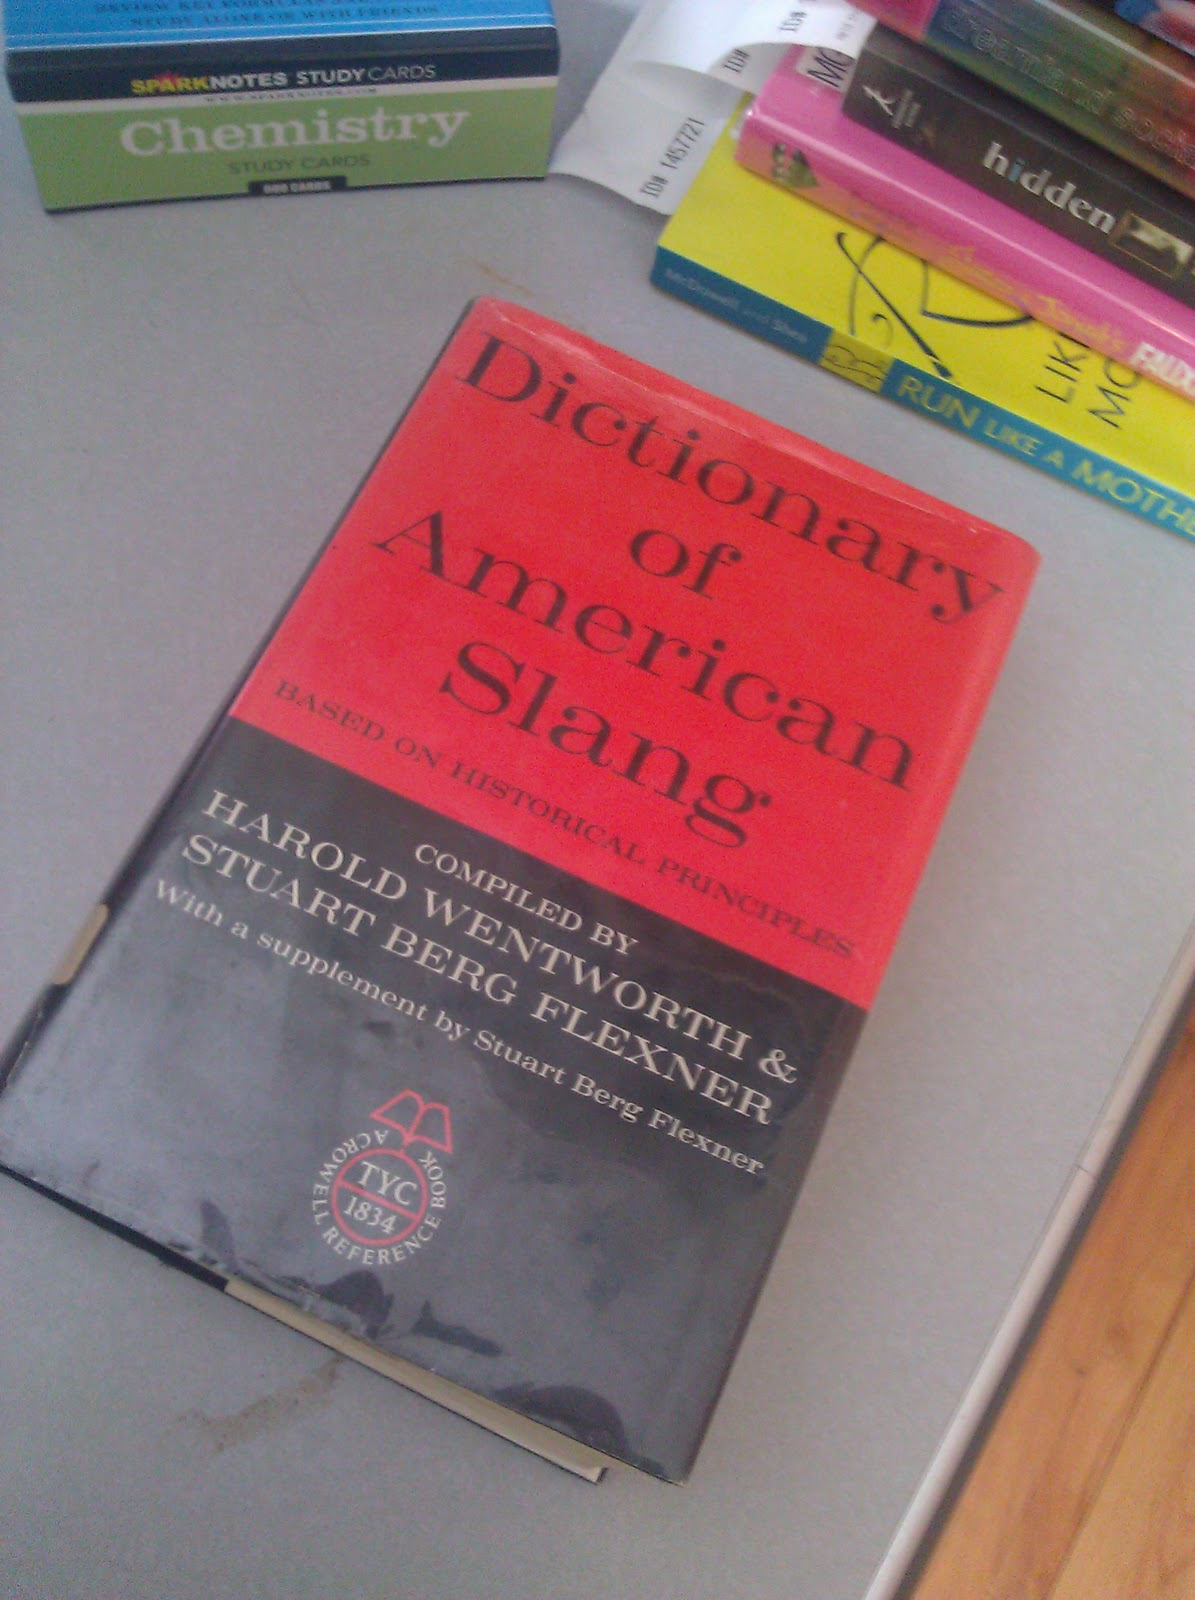 These posts are taken from this copy of The Dictionary of American Slang, ...